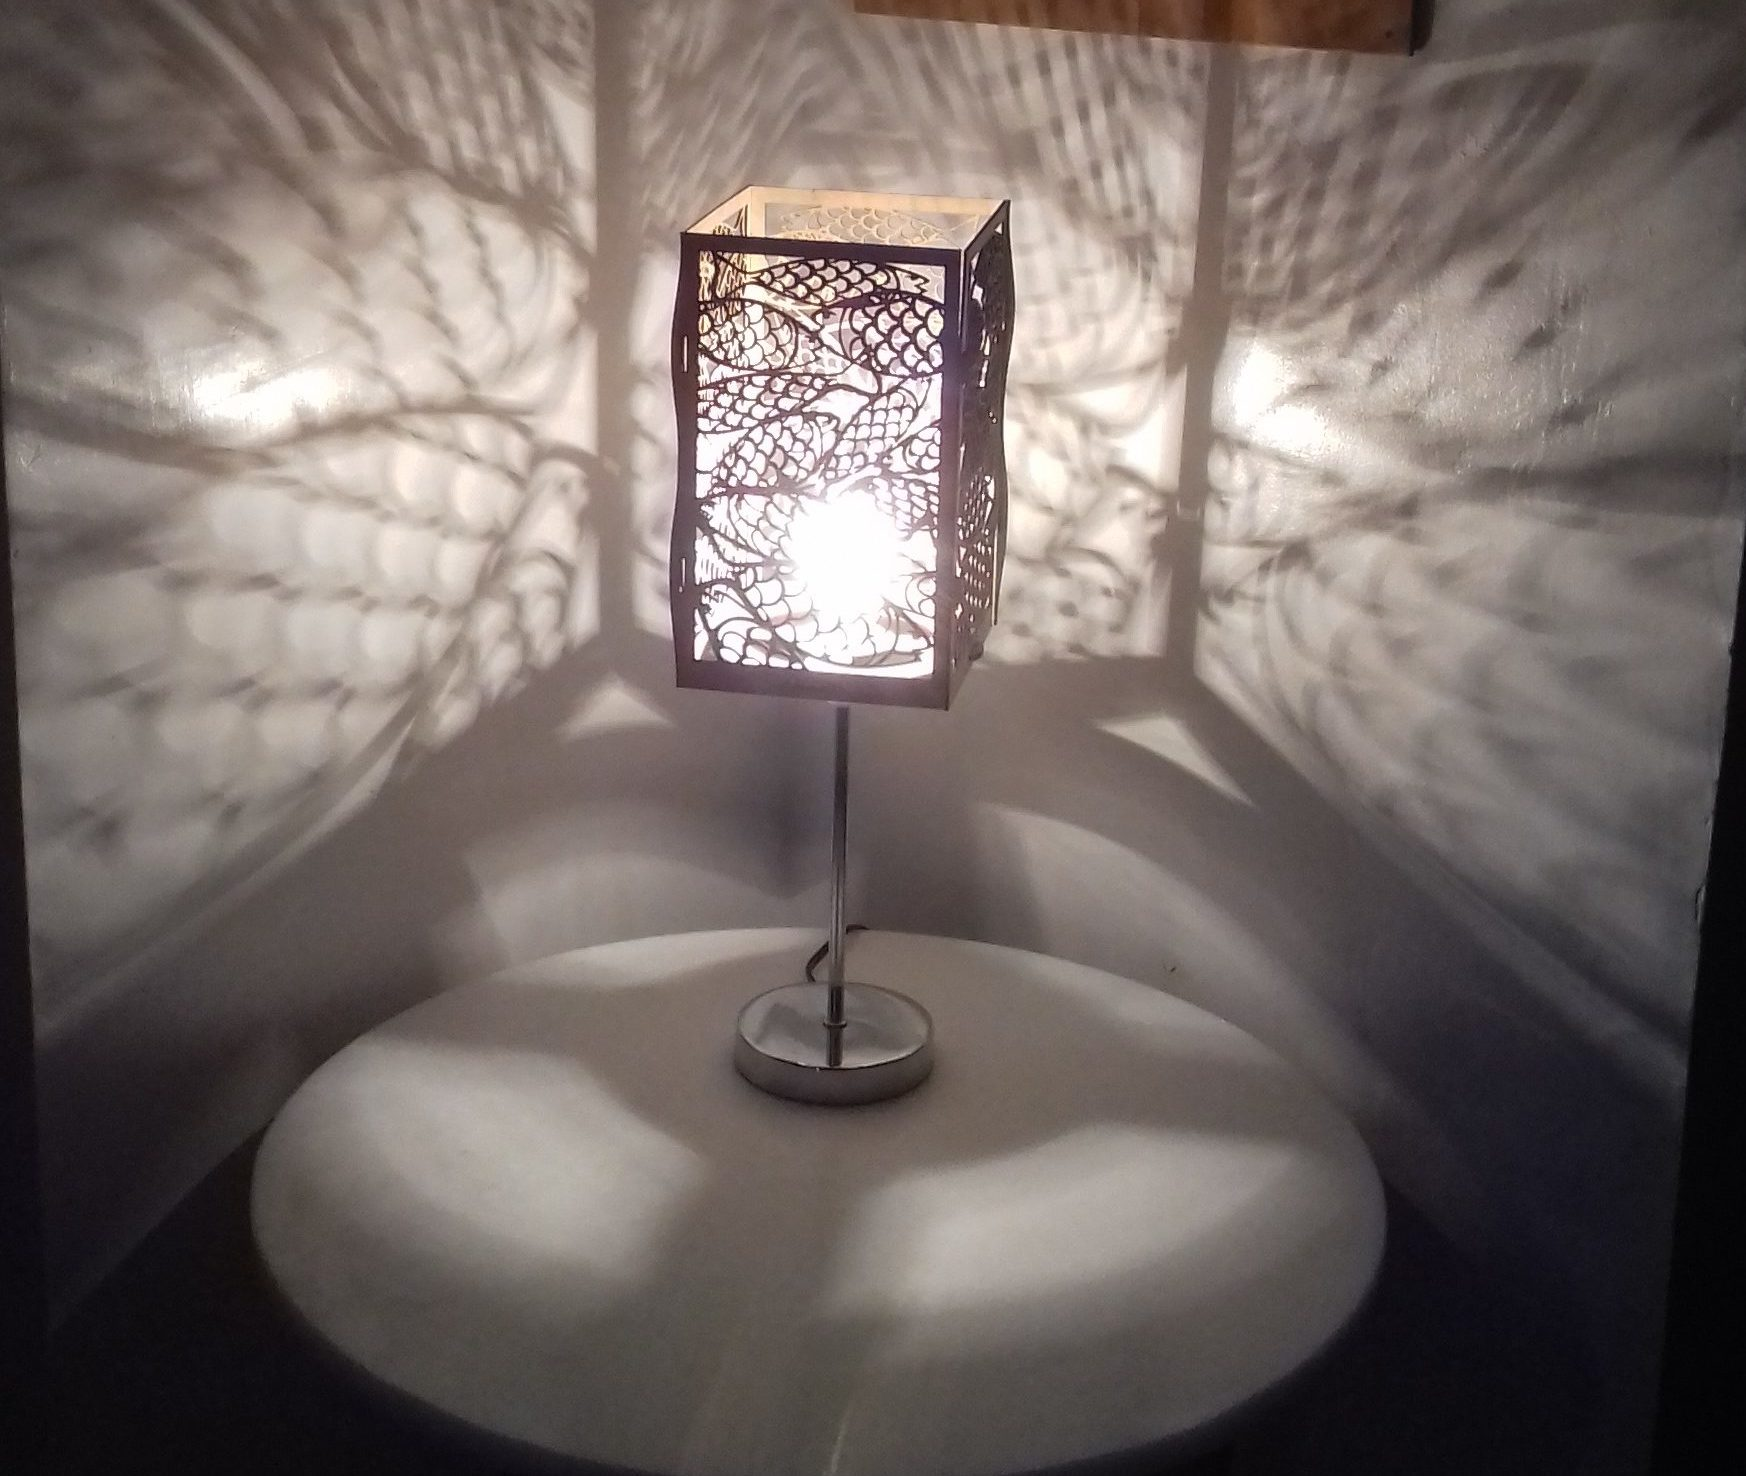 Laser cut fish lampshade made by Izzy at MakerSpace